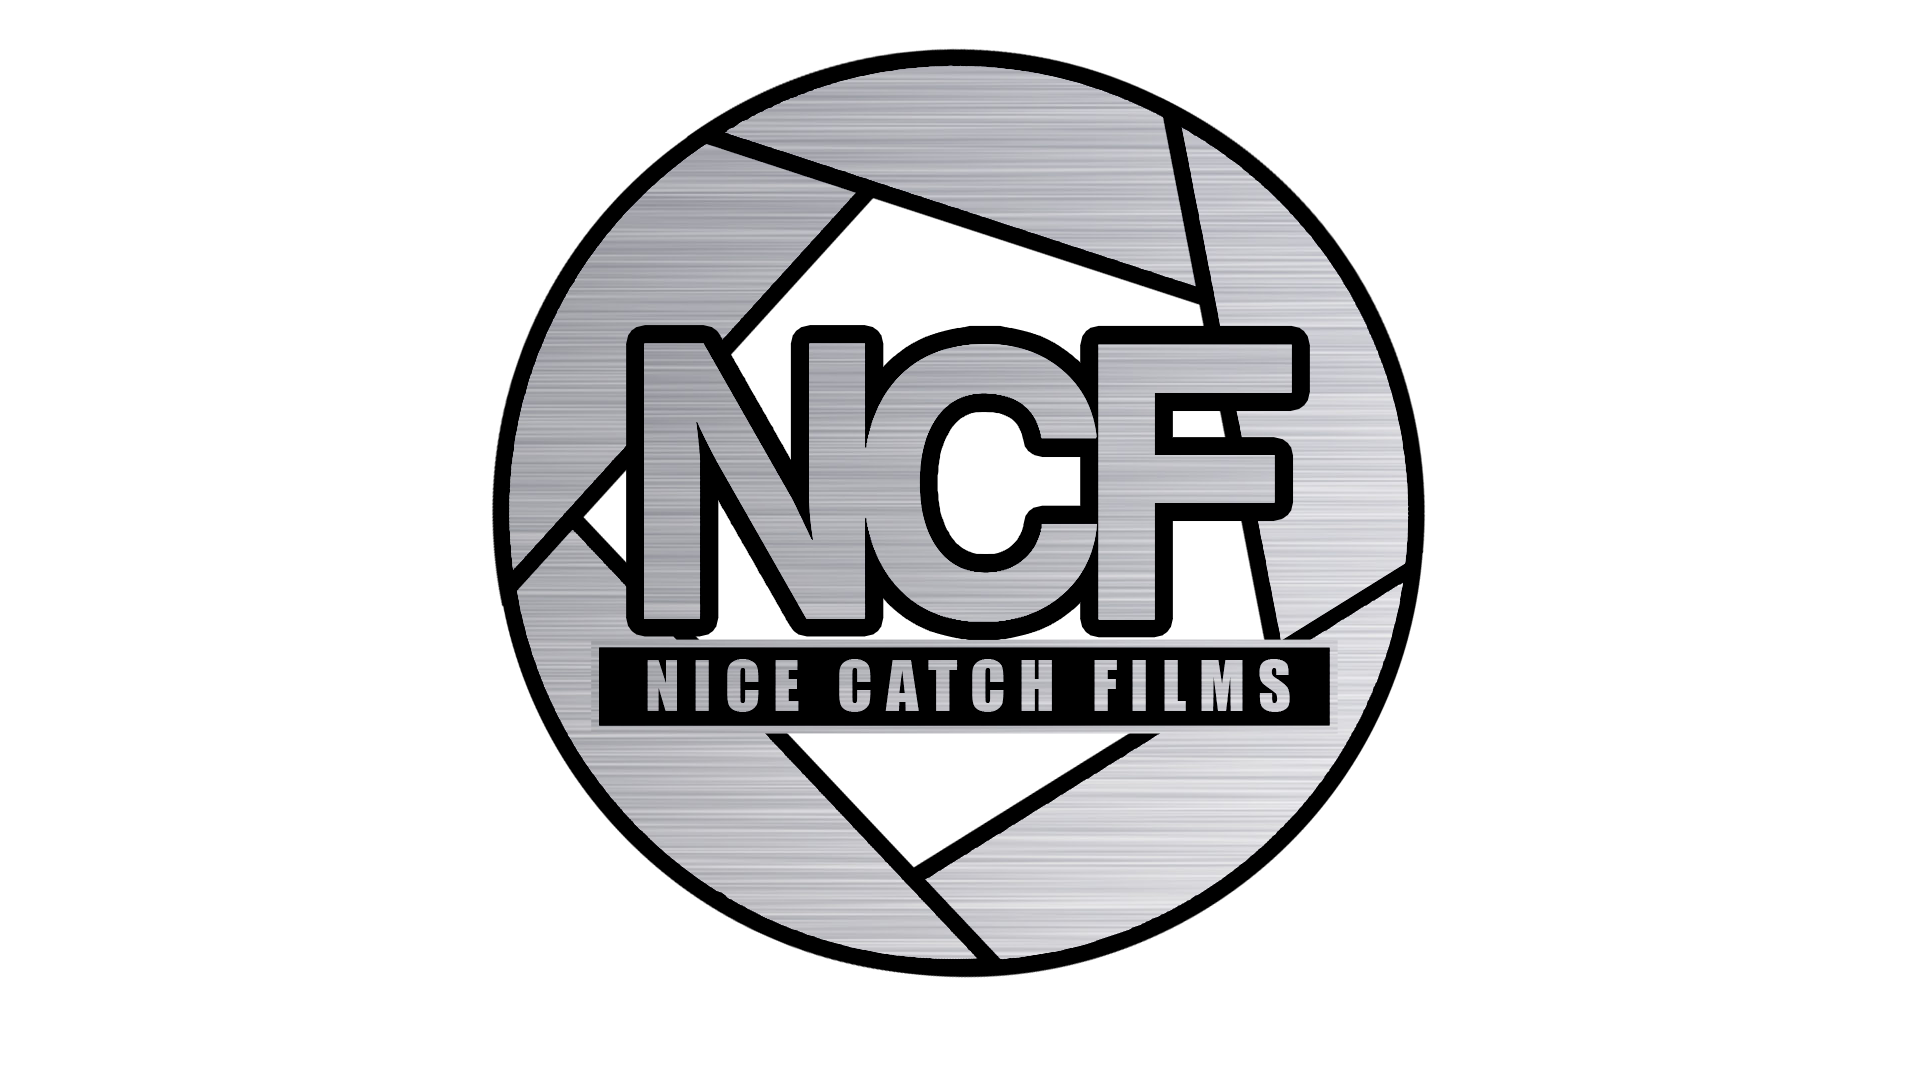 Nice Catch Films